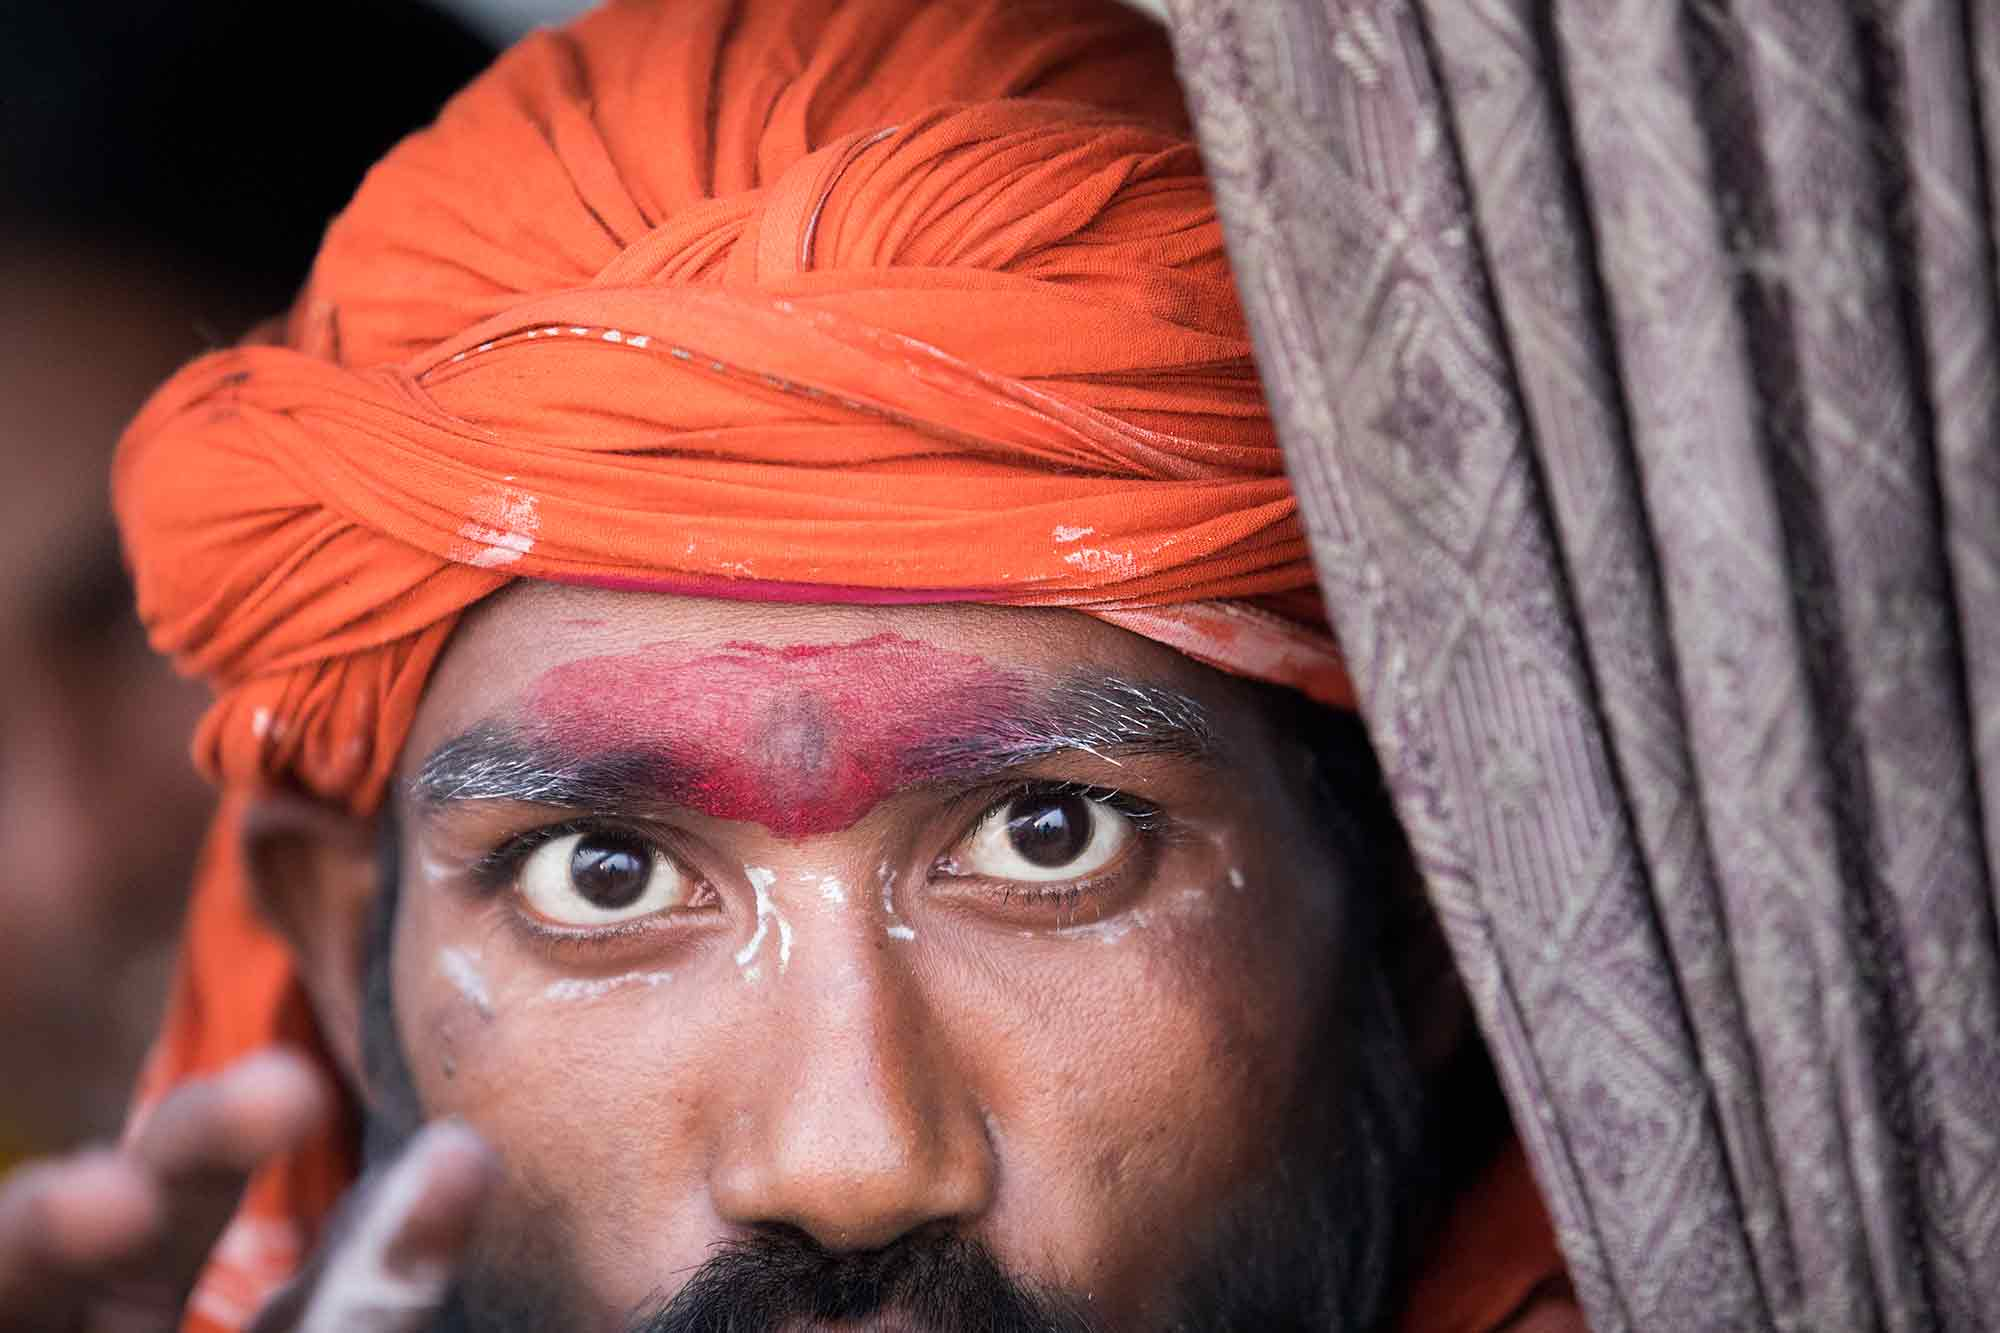 sadhu-eyes-varanasi-india